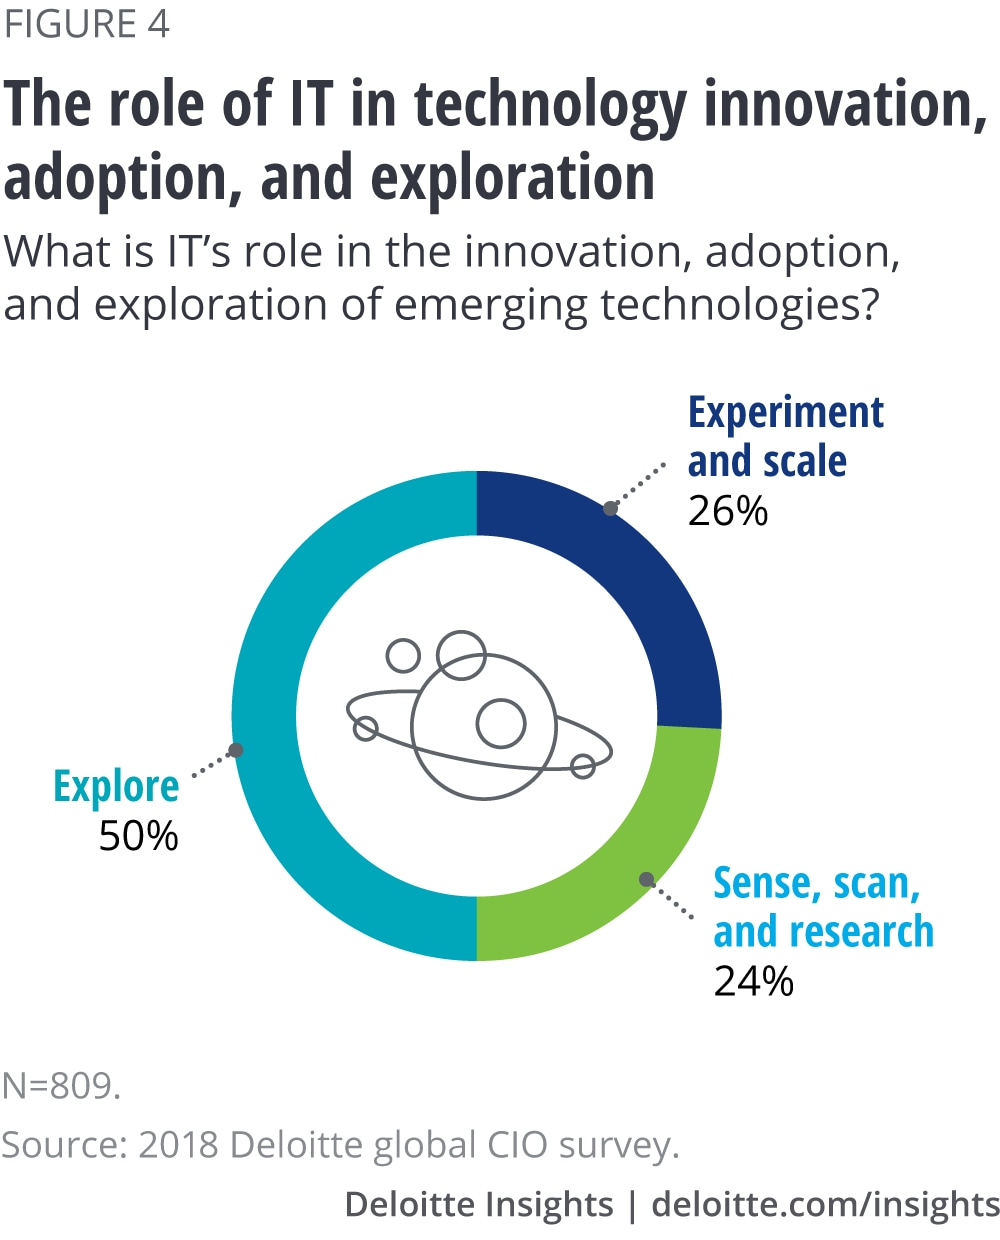 The role of IT in technology innovation, adoption, and exploration